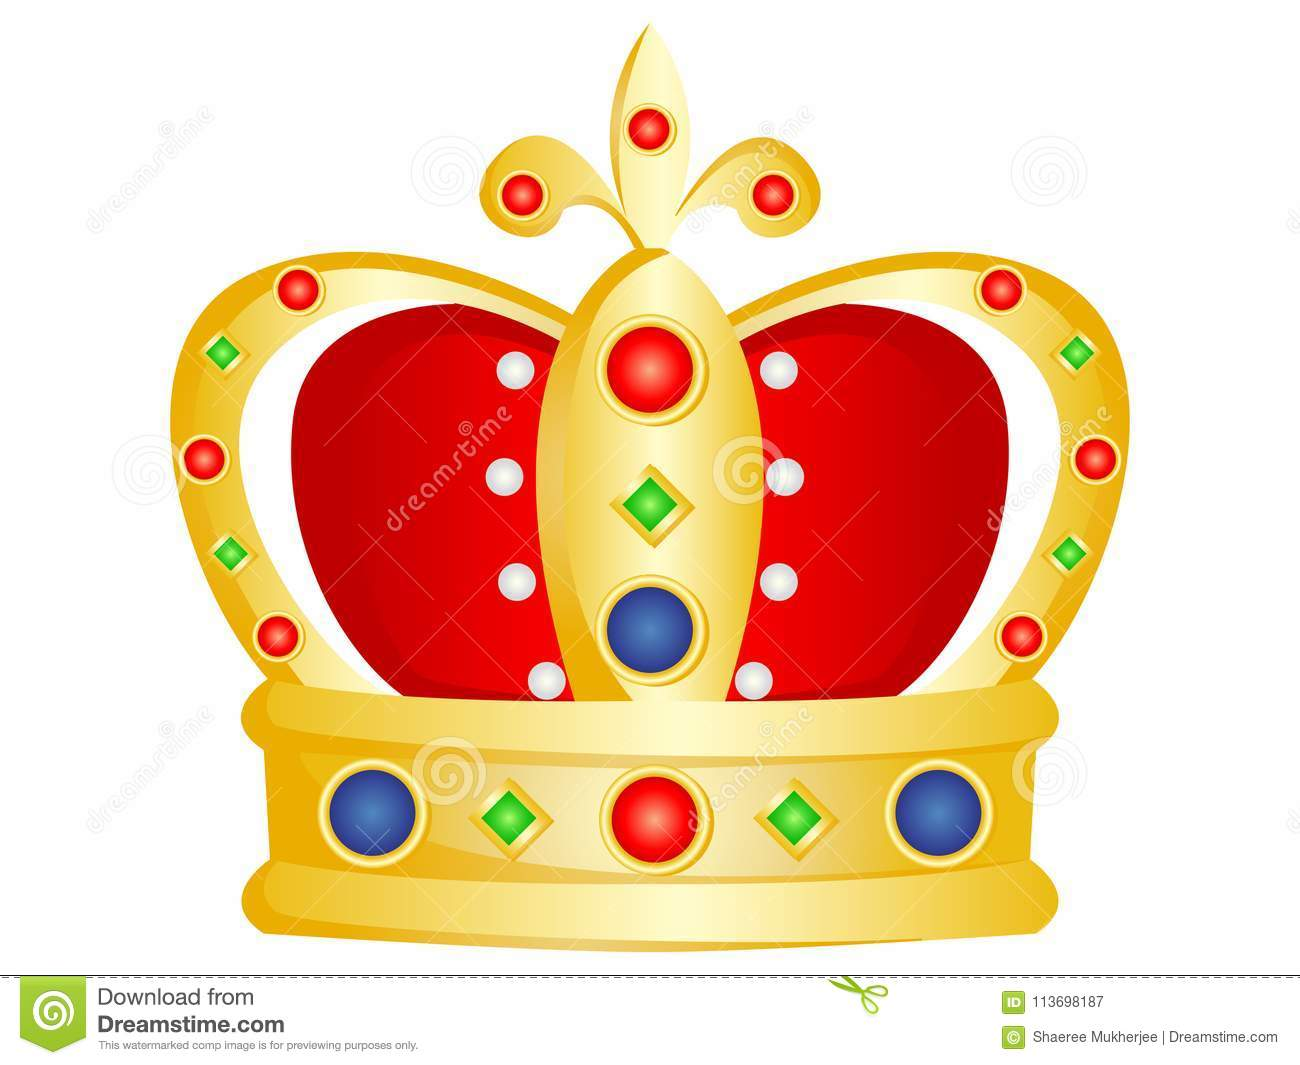 Vector Cartoon Golden Crown Stock Vector Illustration Of Colorful Stones 113698187 It premiered on may 22, 2011. https www dreamstime com vector illustration crown jewel stones gold red colors vector cartoon golden crown image113698187